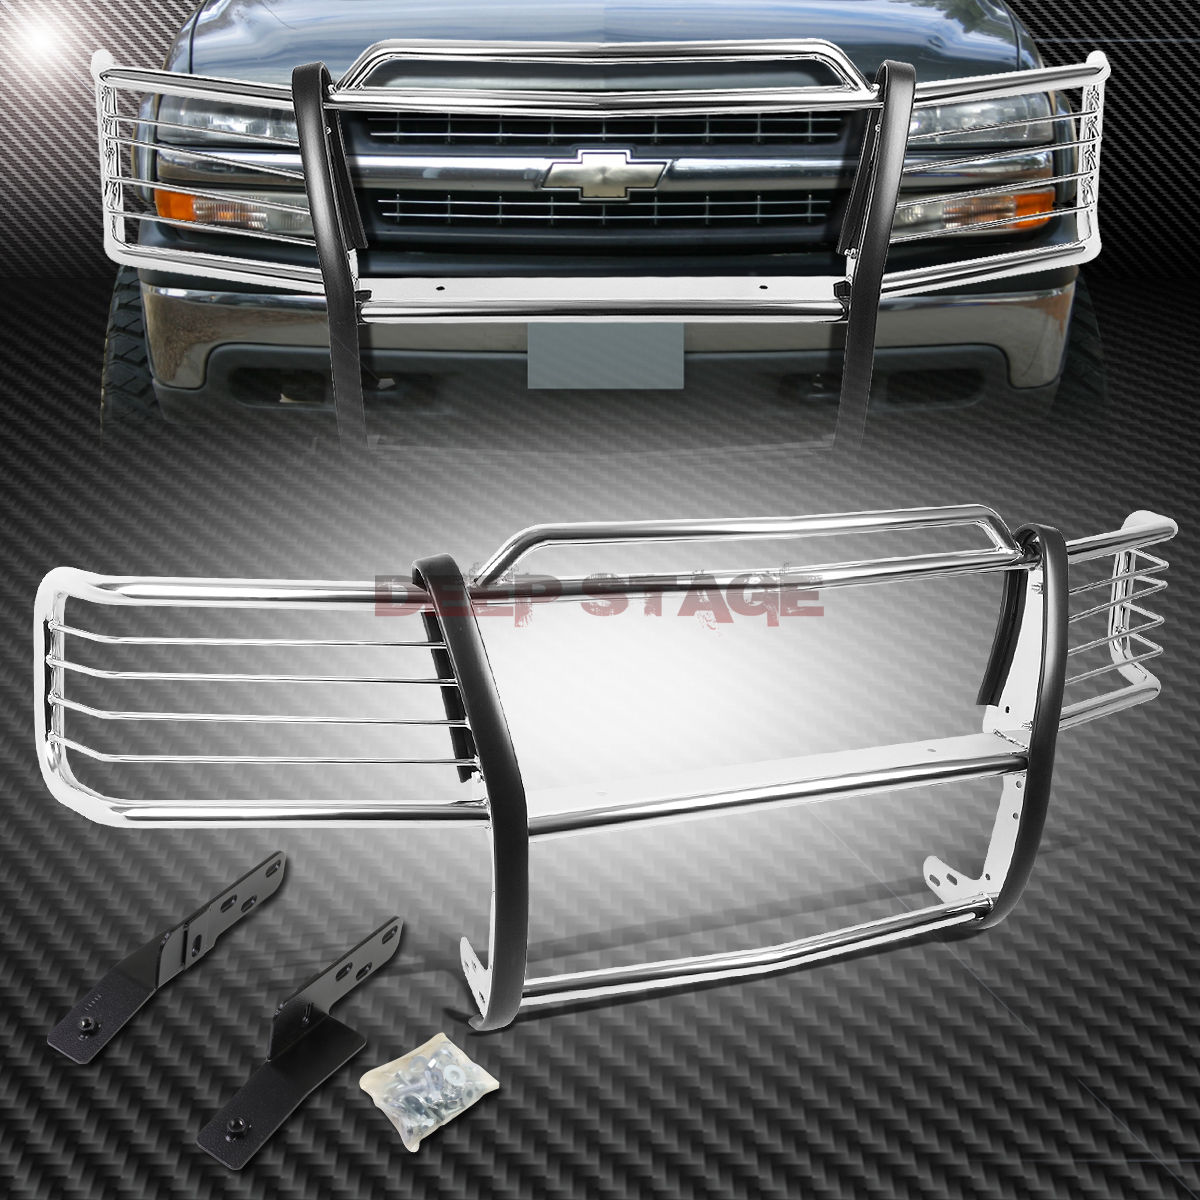 グリル クロムステンレスフロントバンパーグリルガード00-06 TAHOE / SUBURBAN 1500 CHROME STAINLESS STEEL FRONT BUMPER GRILL GUARD FOR 00-06 TAHOE/SUBURBAN 1500